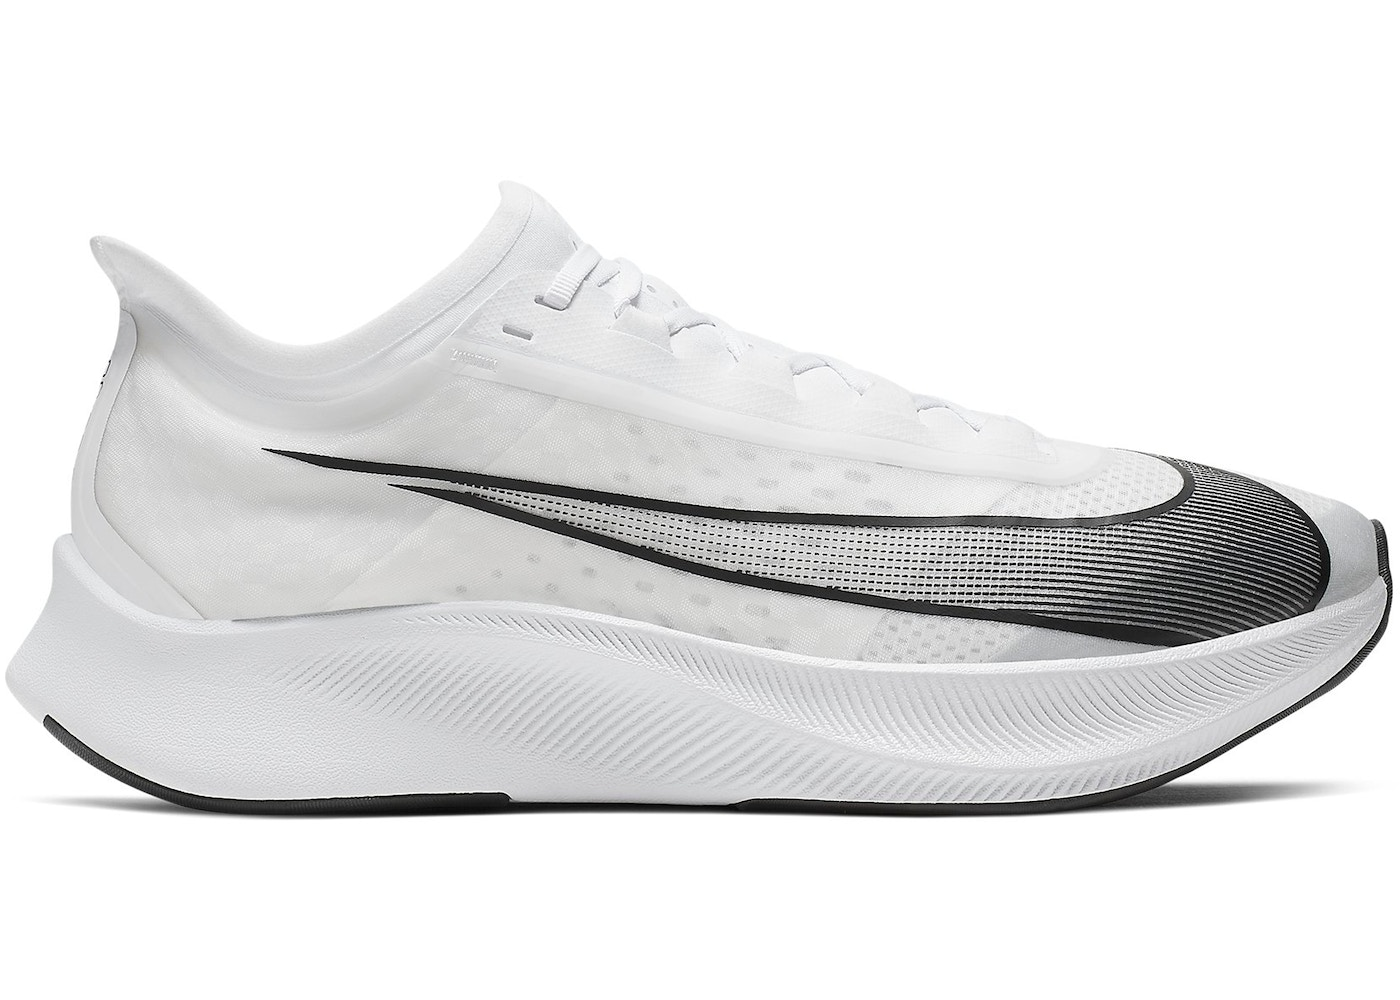 2e178ee1 Nike Zoom Fly 3 White Black - AT8240-100